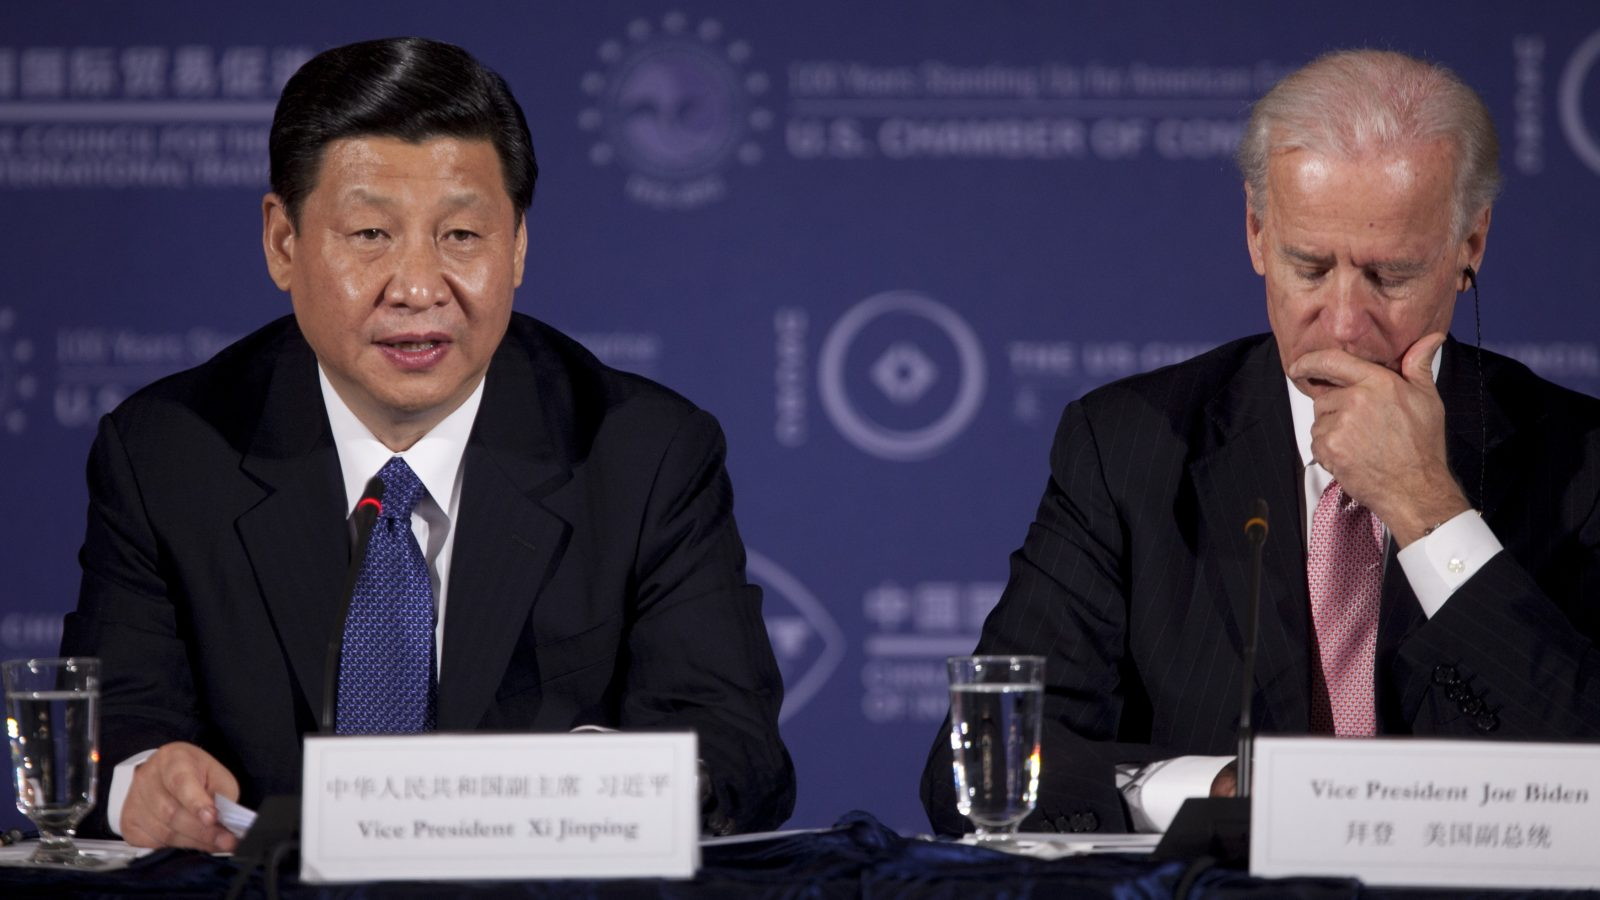 Biden sits next to Xi.